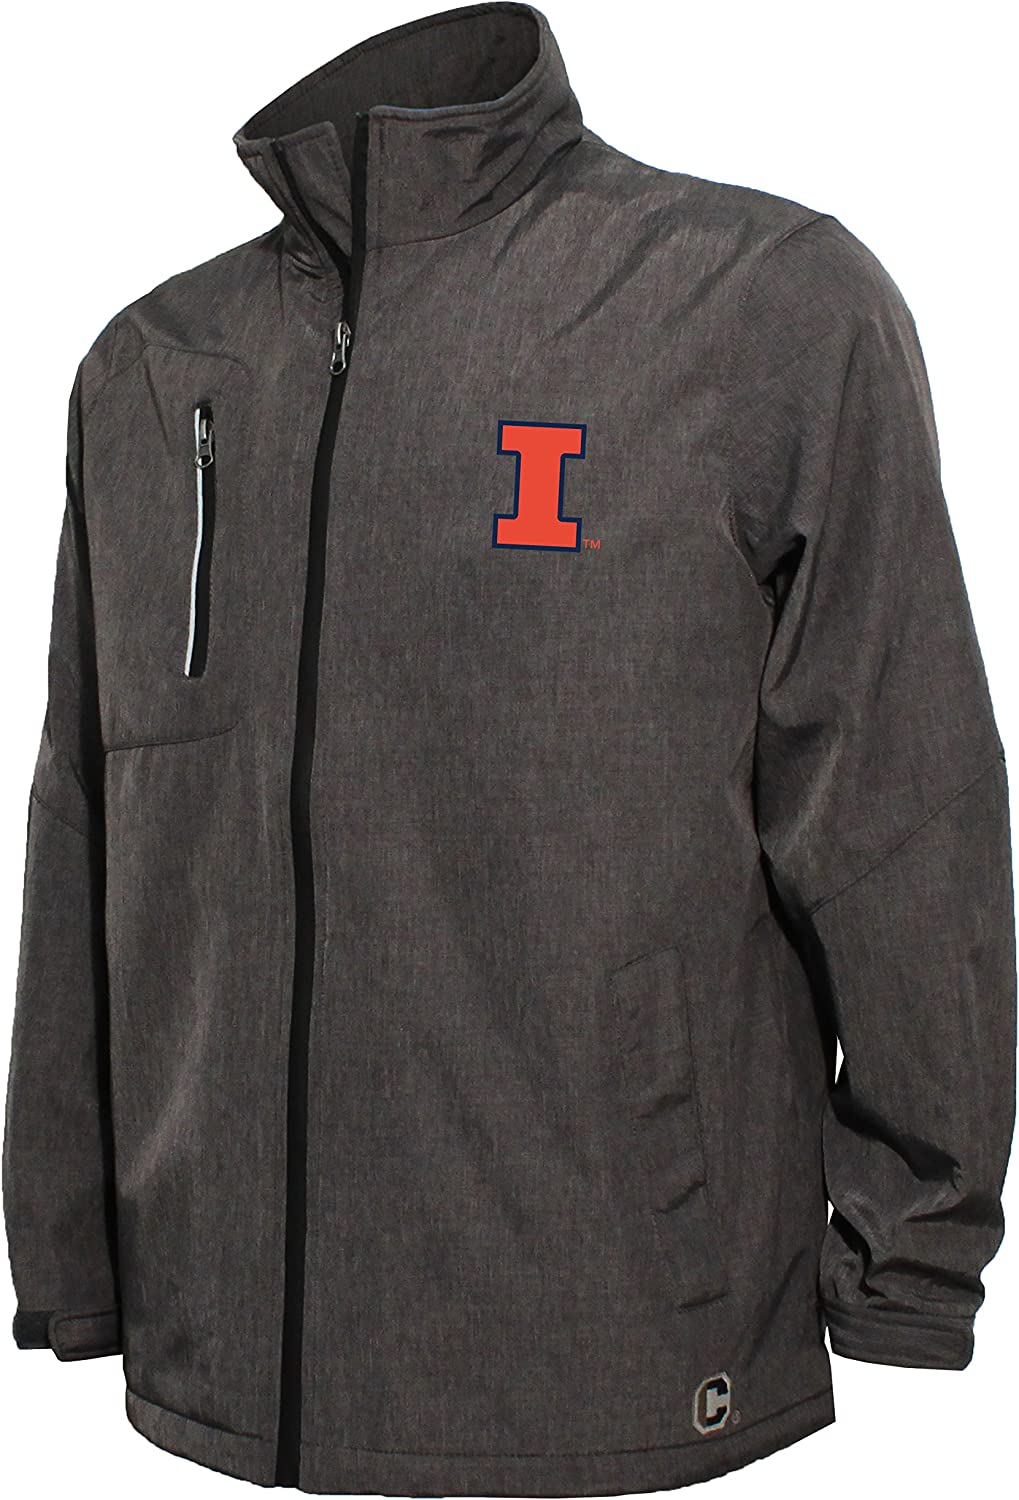 Crable Adult Men Bonded Stand Up Collar Stadium Jacket